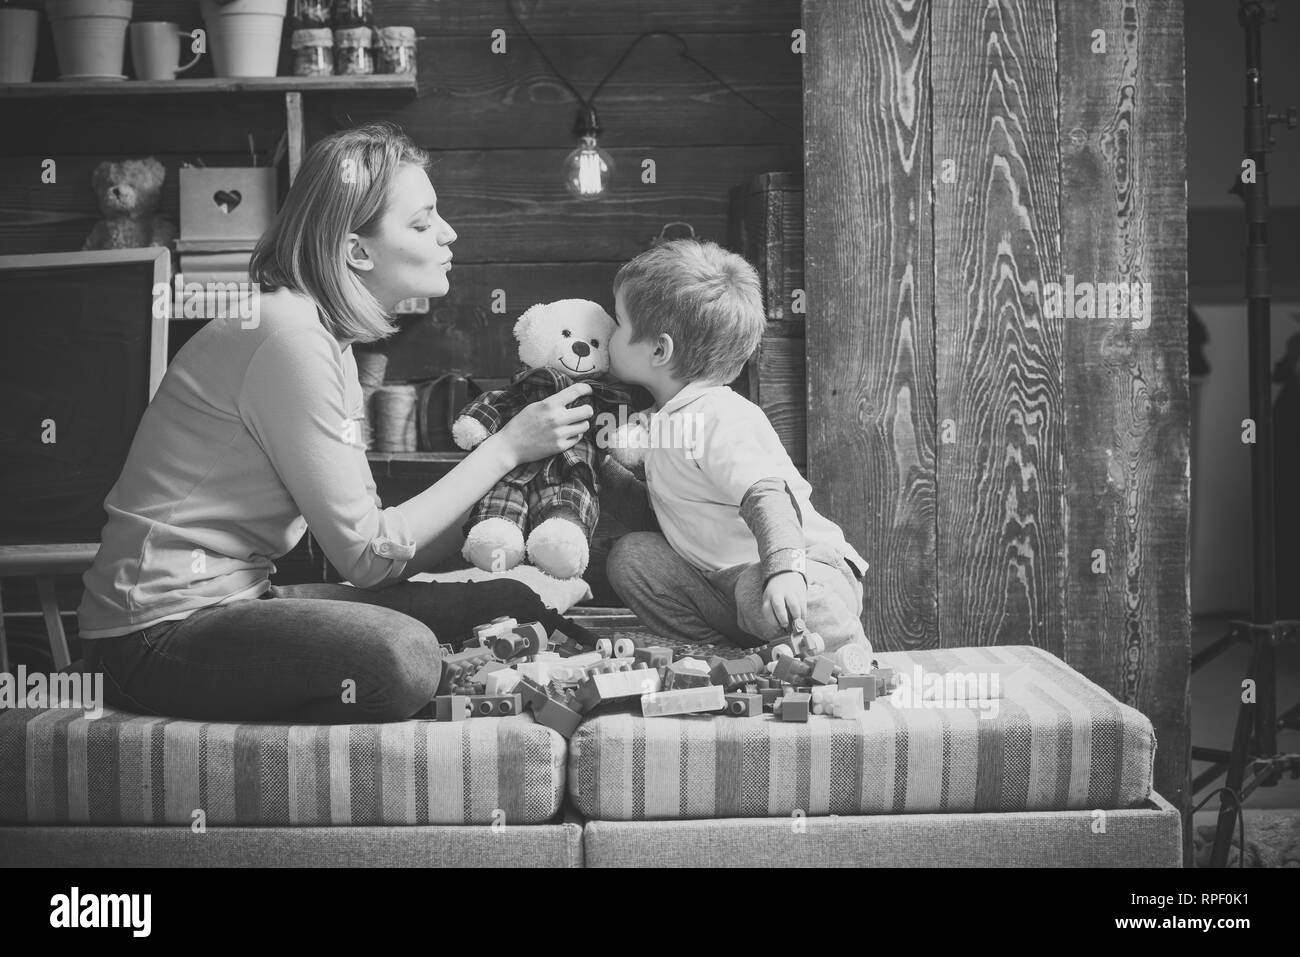 Mother teaches son to be kind and friendly. Kindness and education concept. Family play with teddy bear at home. Mom and child play with soft toy - Stock Image